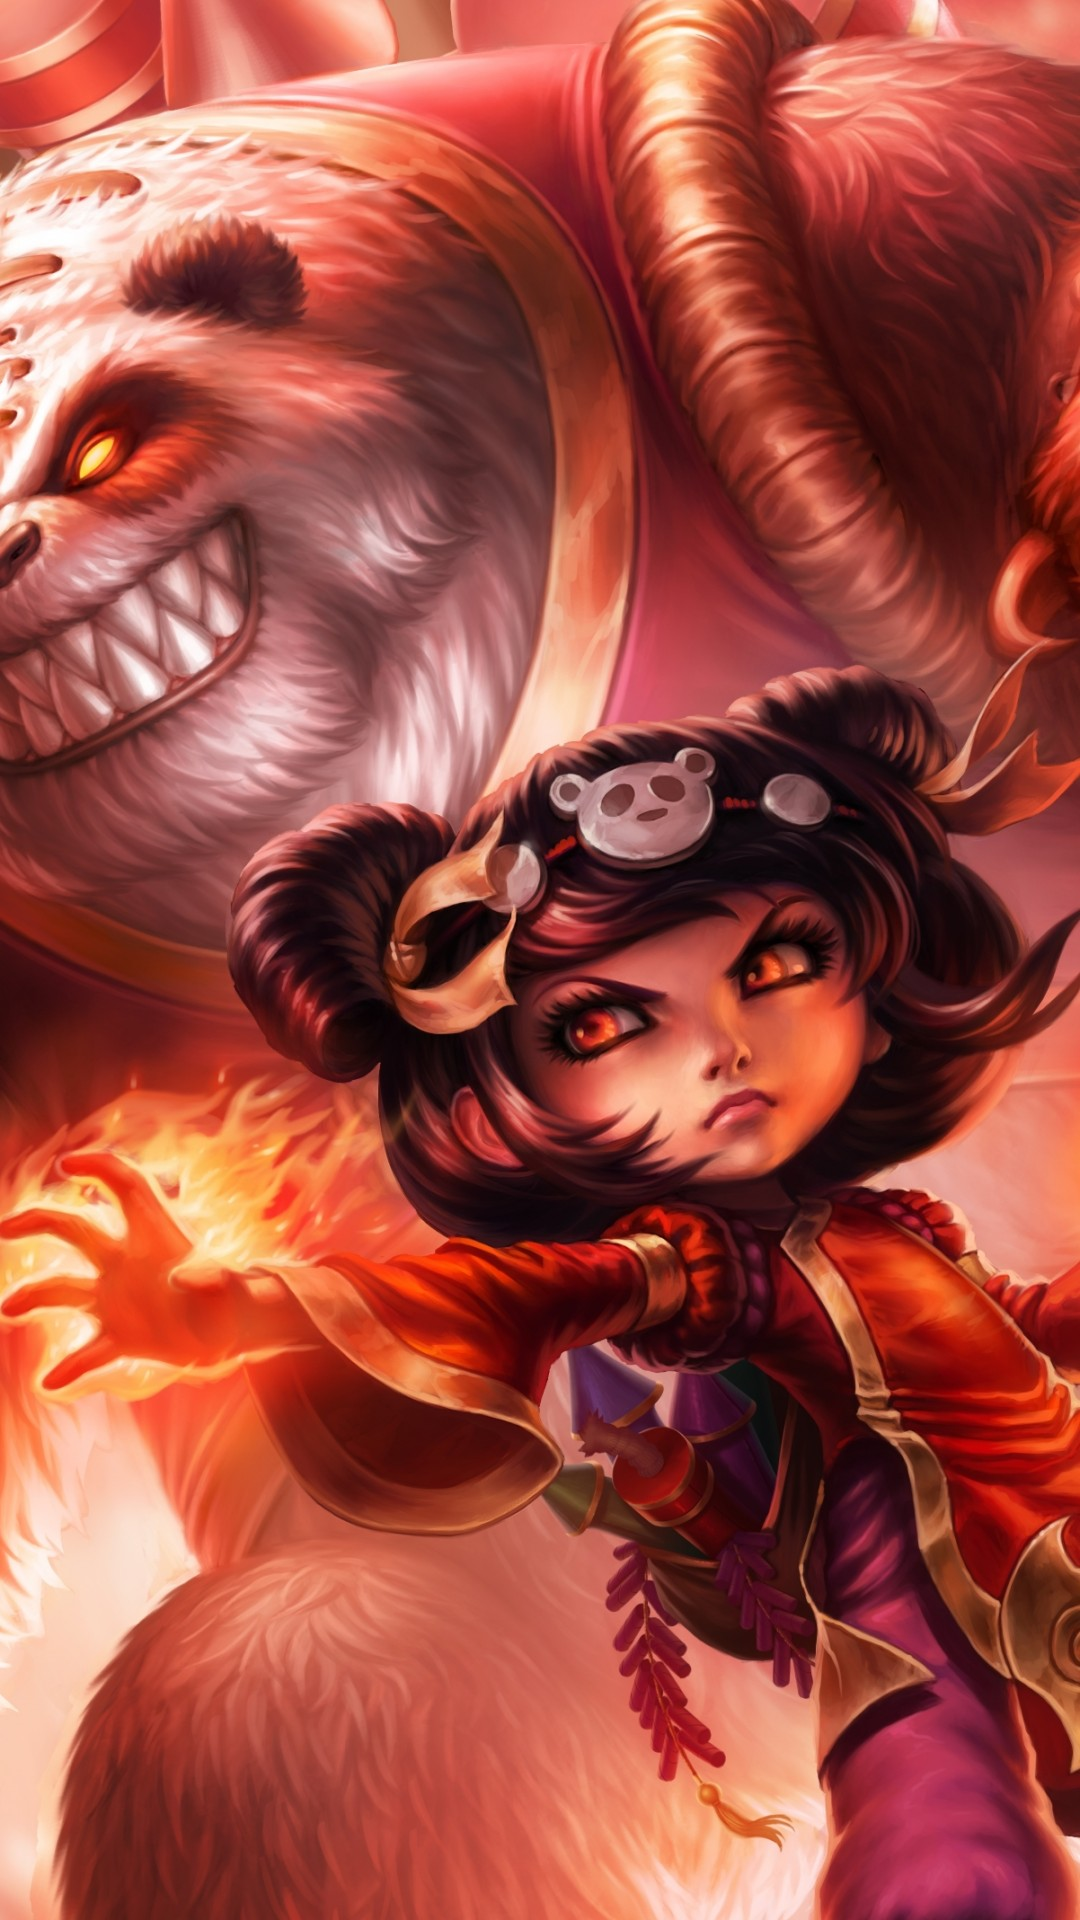 Wallpaper Annie League Of Legends Game Lol Moba Games